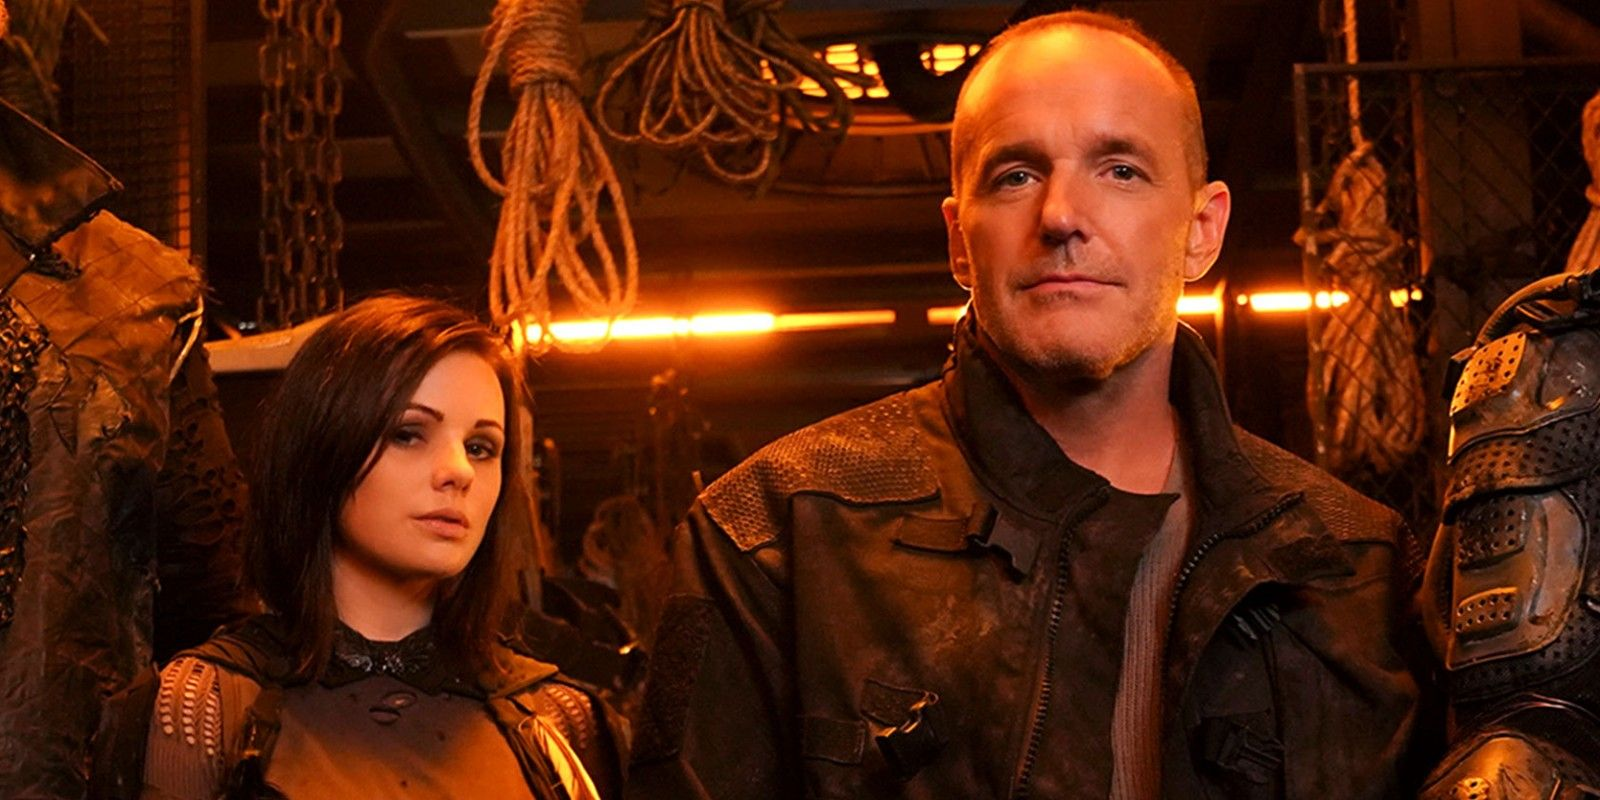 Sarge As Phil Coulson's Doppelganger